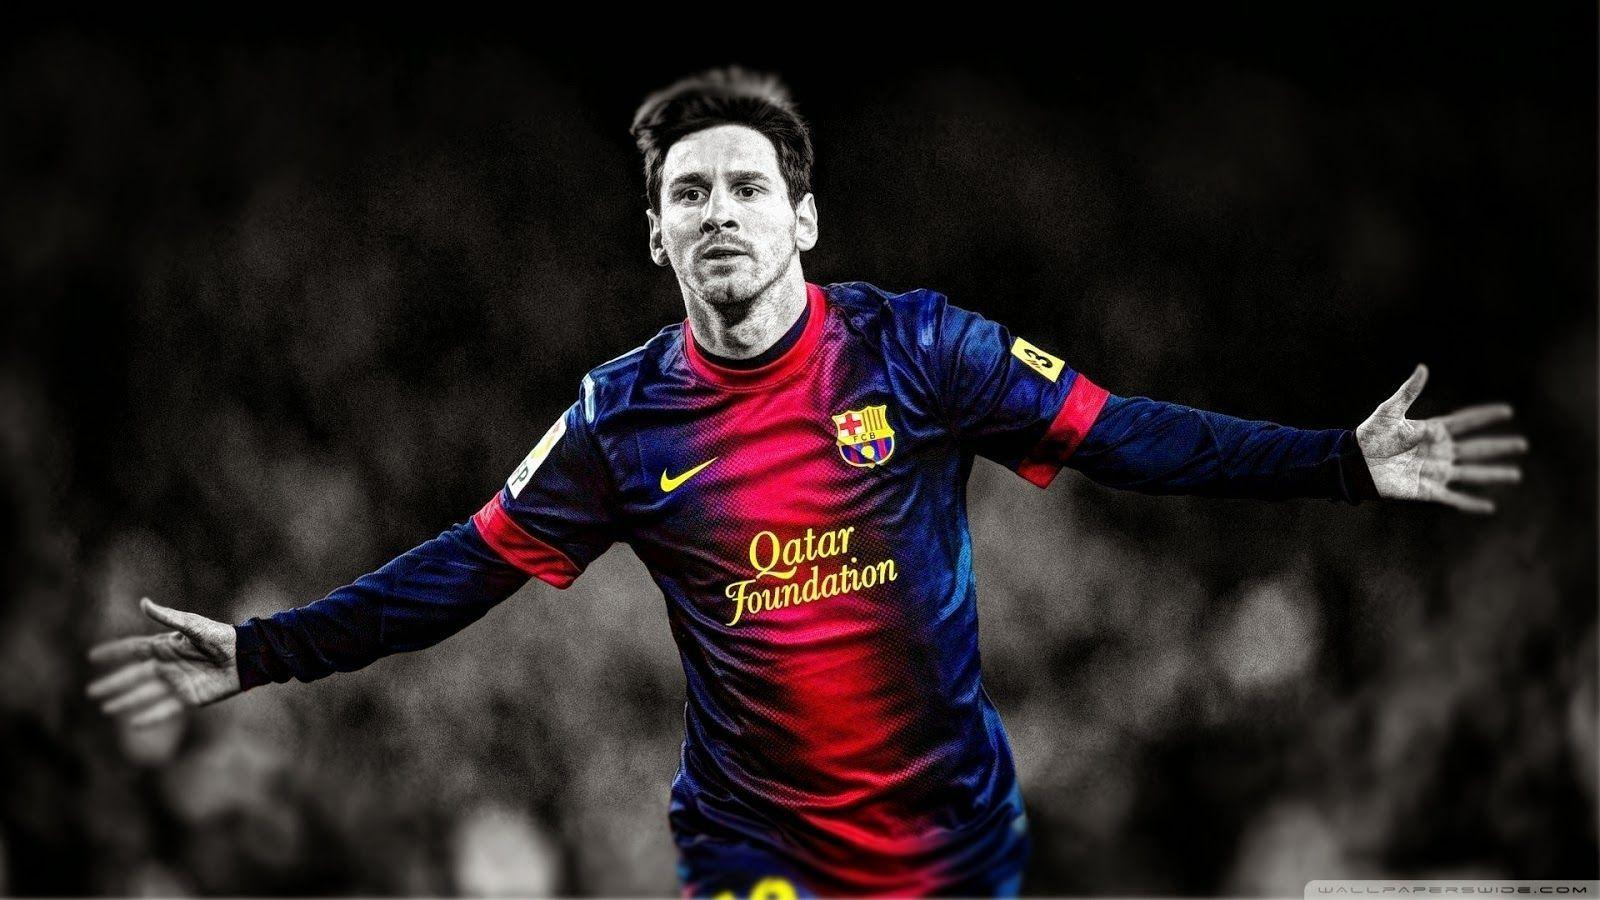 Lionel Messi Wallpapers HD 2015 1600x900